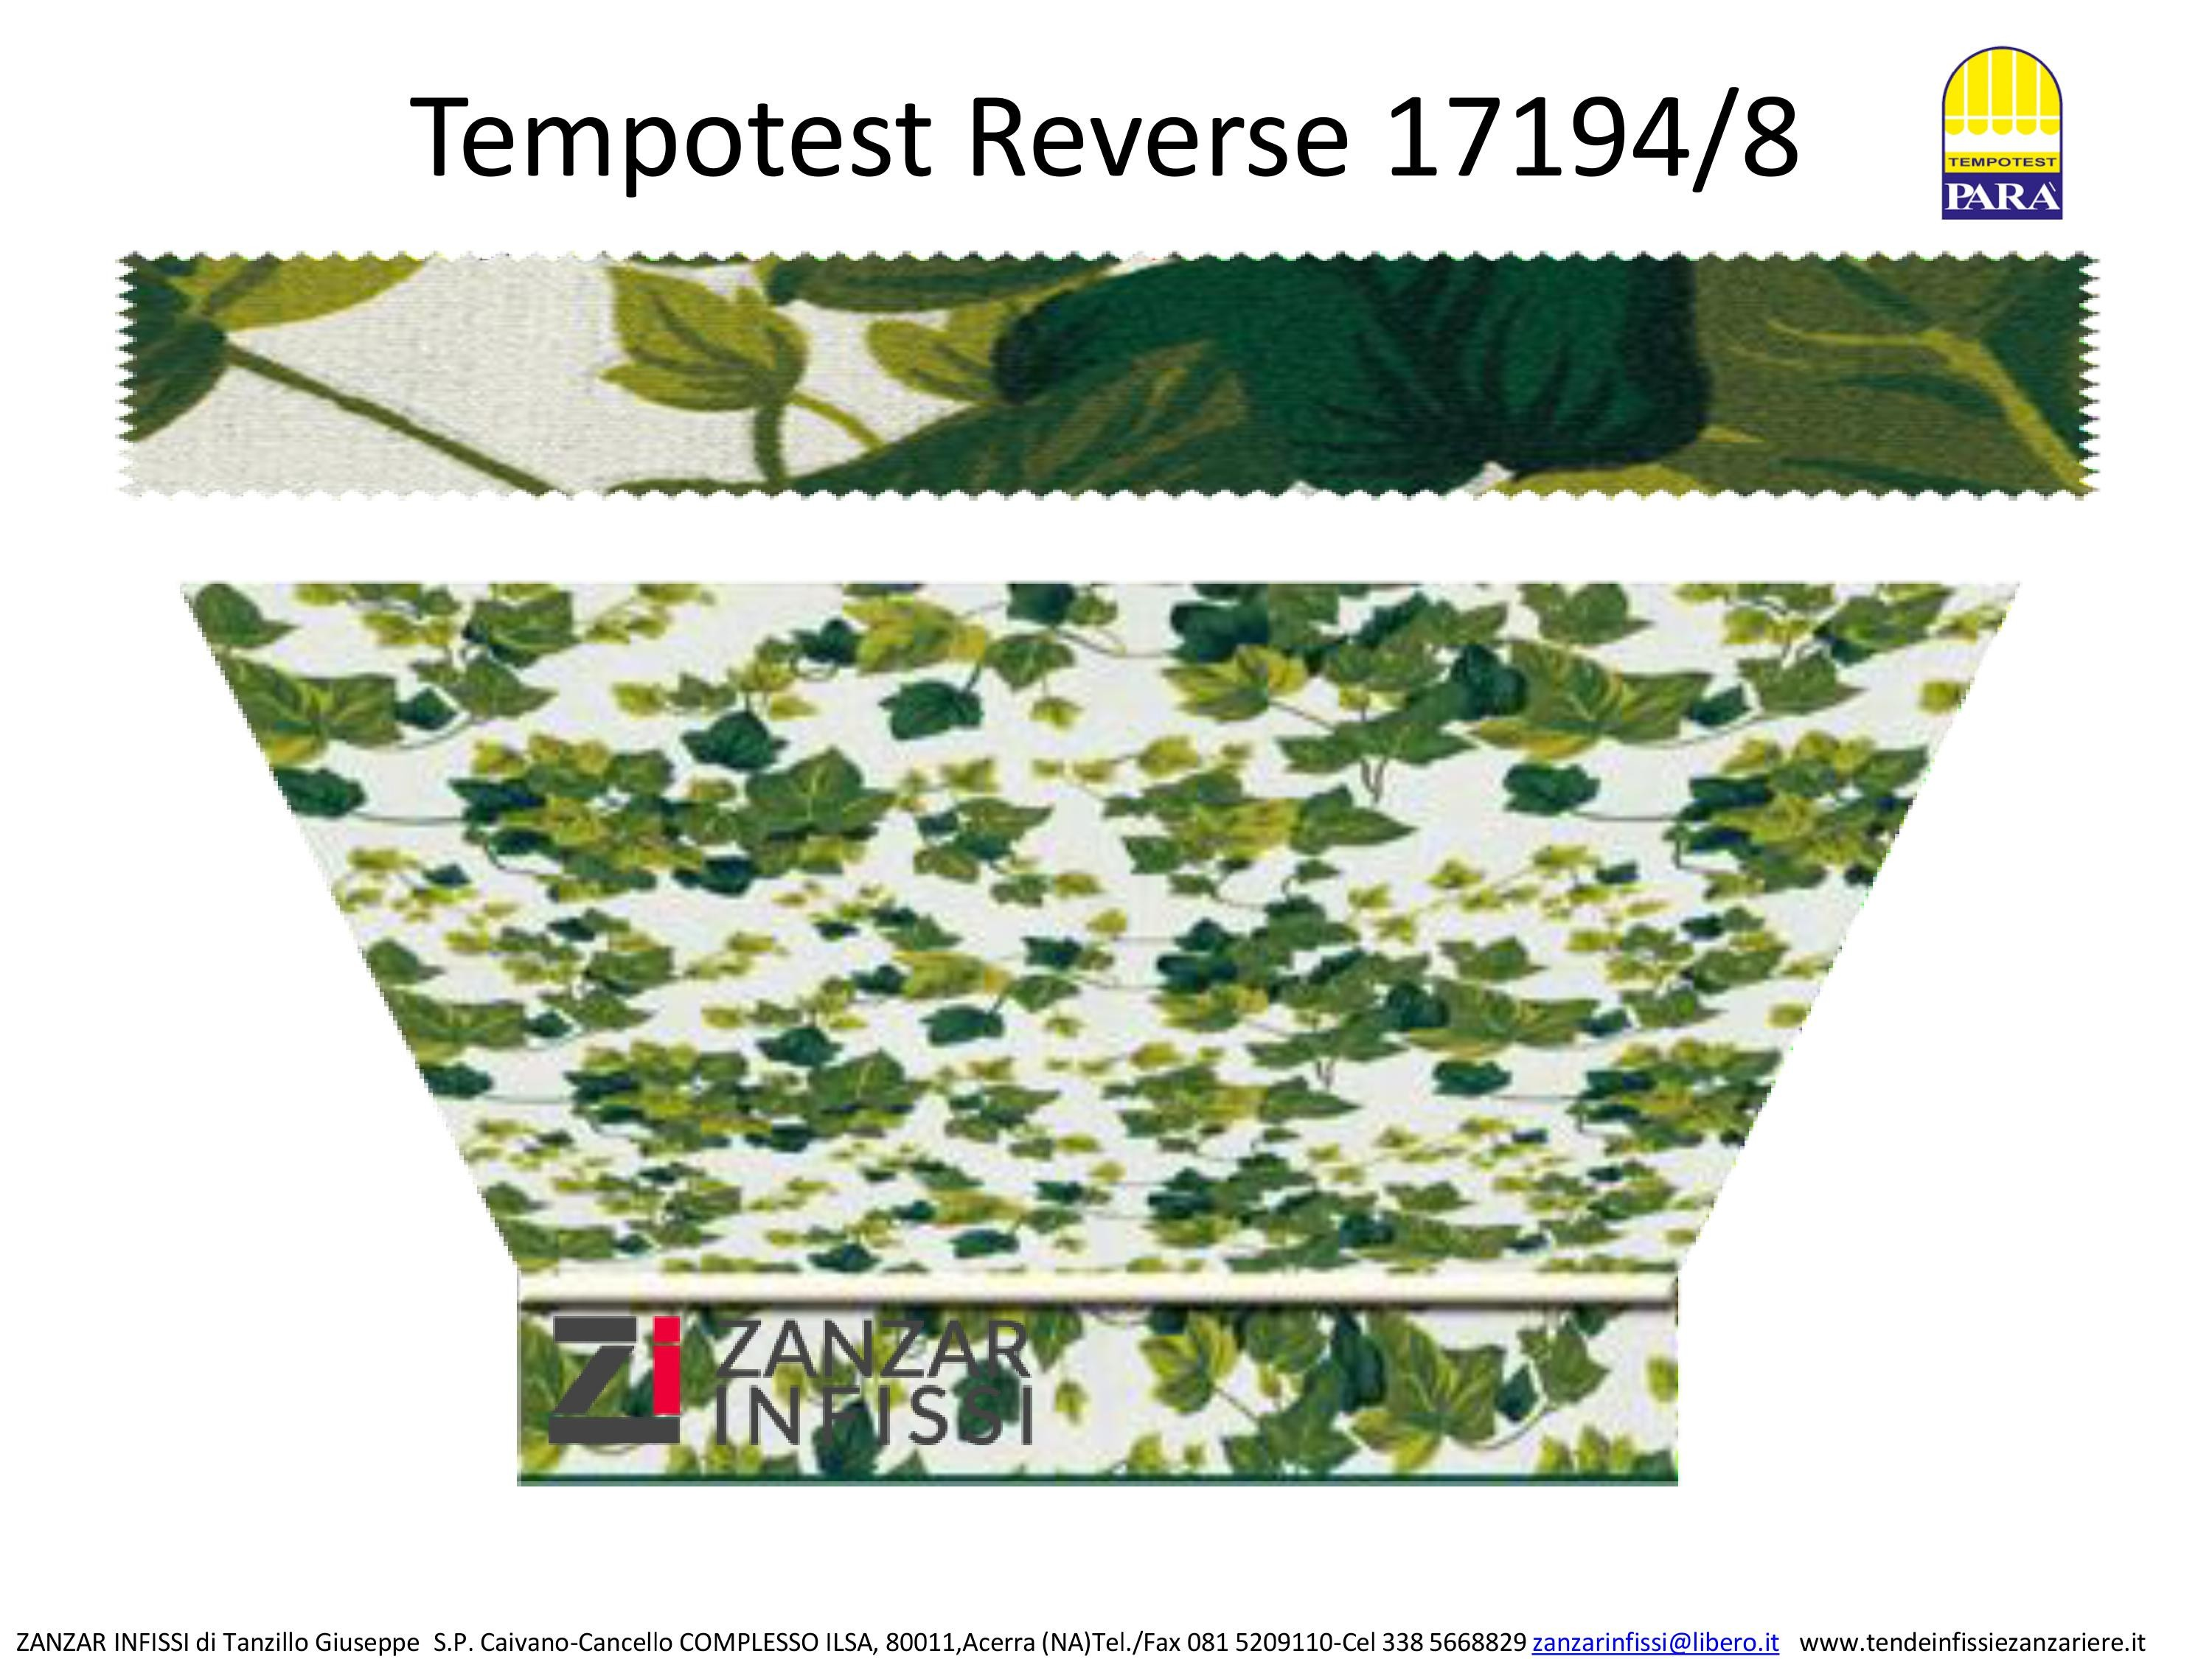 Tempotest reverse 17914/8